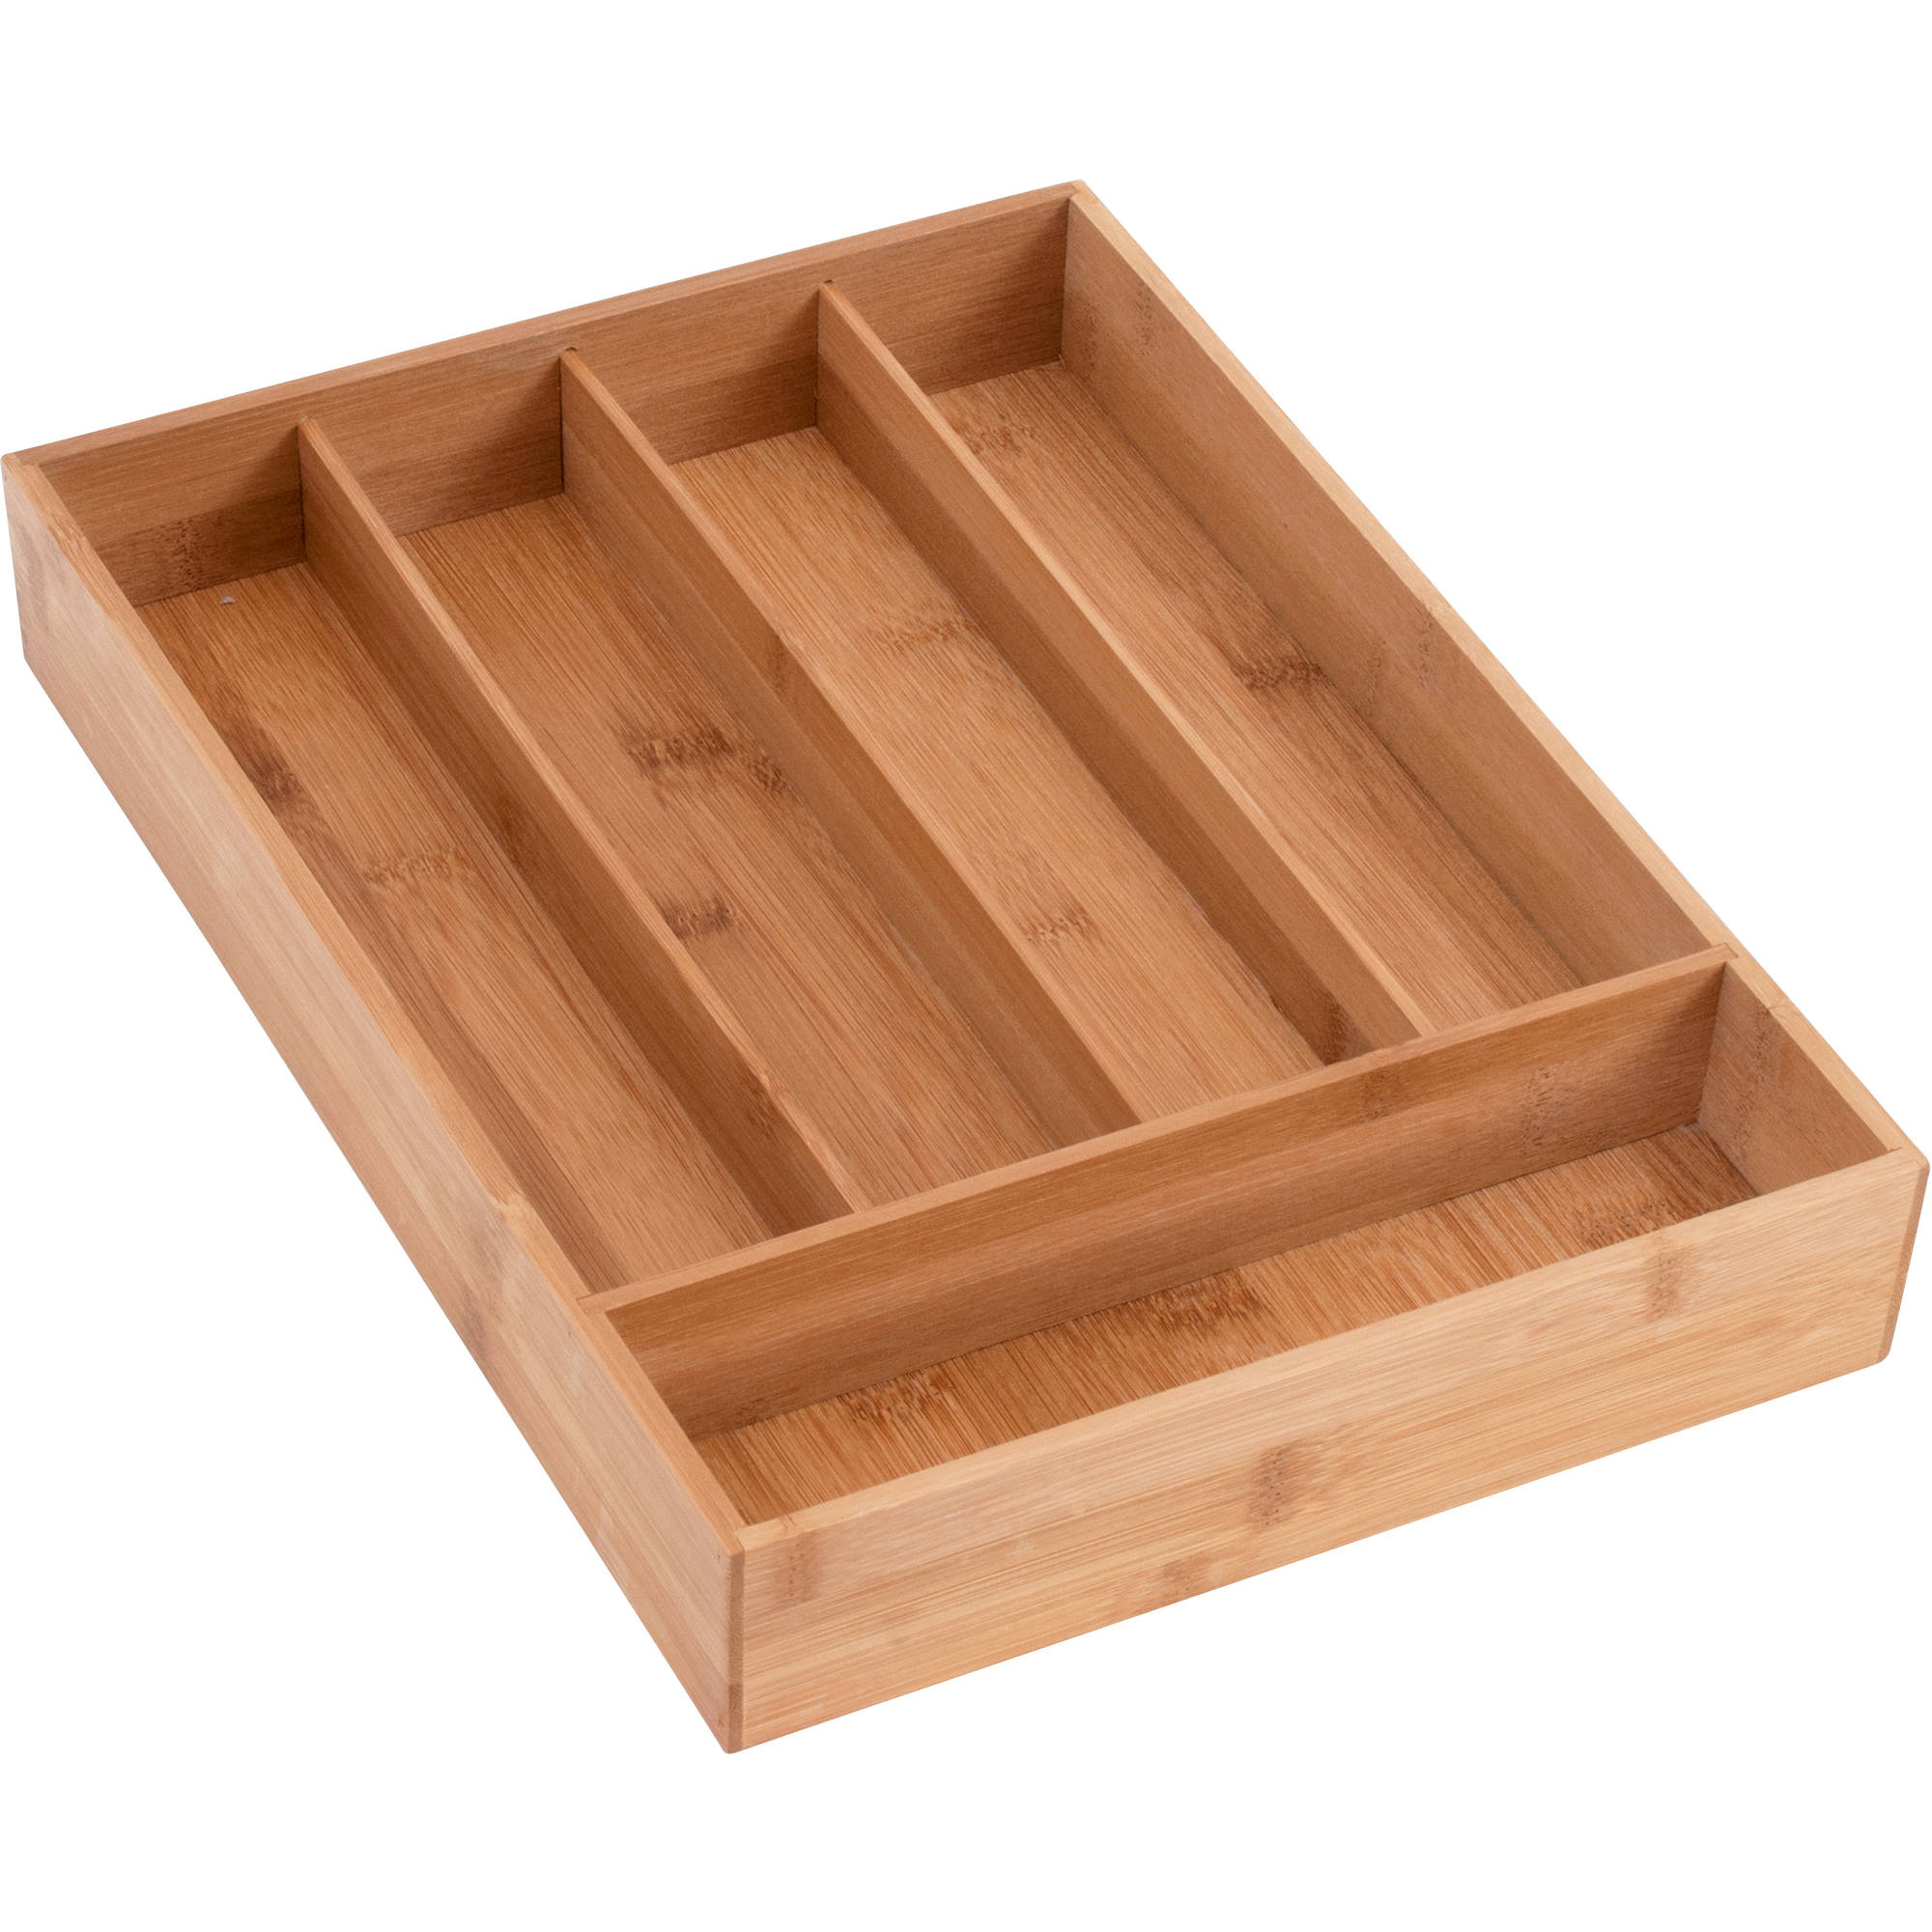 Better Homes and Gardens Anchor Hocking Cutlery Tray Bamboo Drawer Organizer